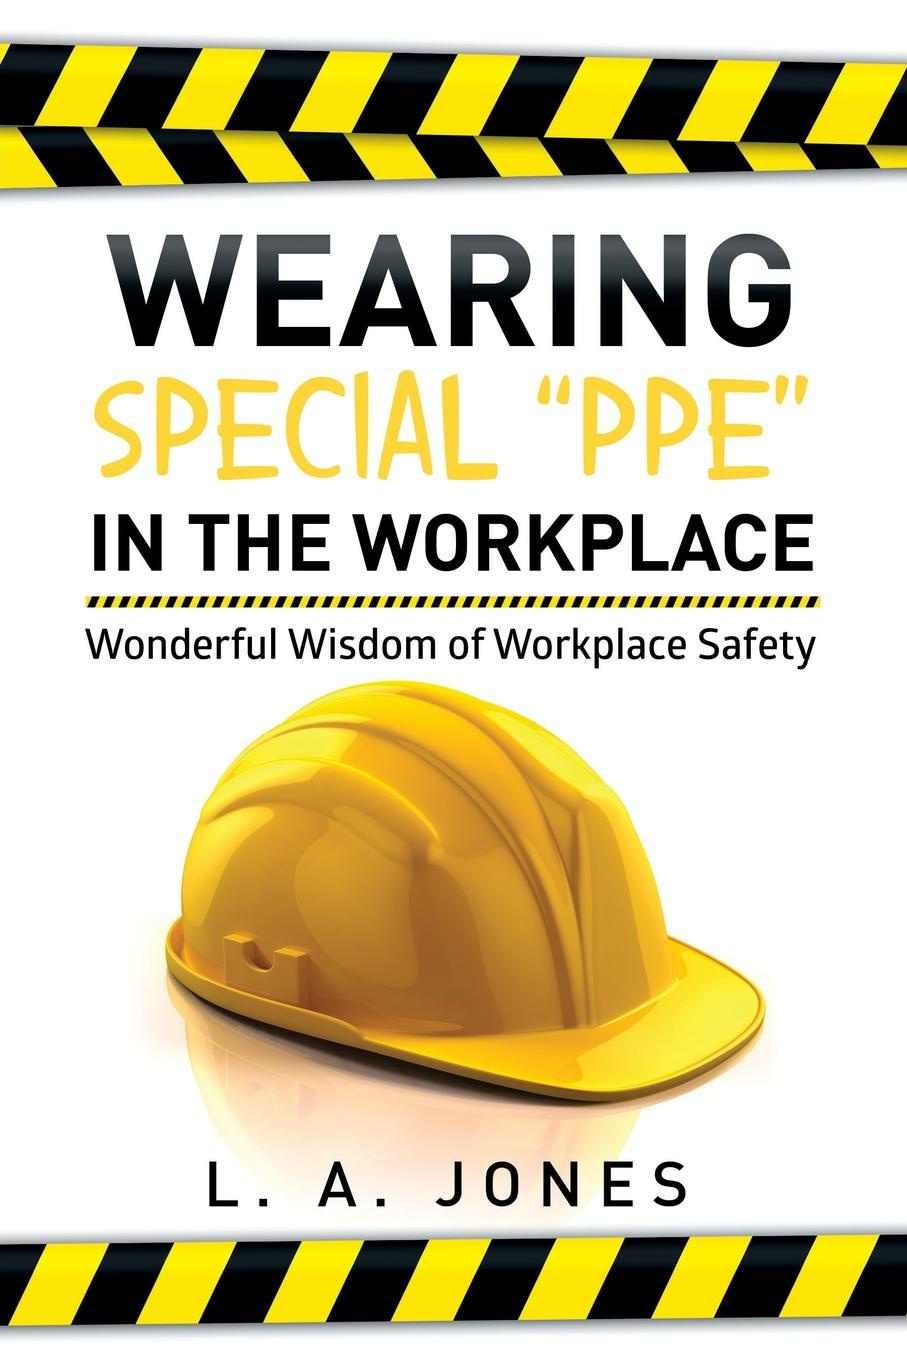 L. a. Jones Wearing Special Ppe in the Workplace. Wonderful Wisdom of Workplace Safety dr debra stewart finding the good in the workplace bully